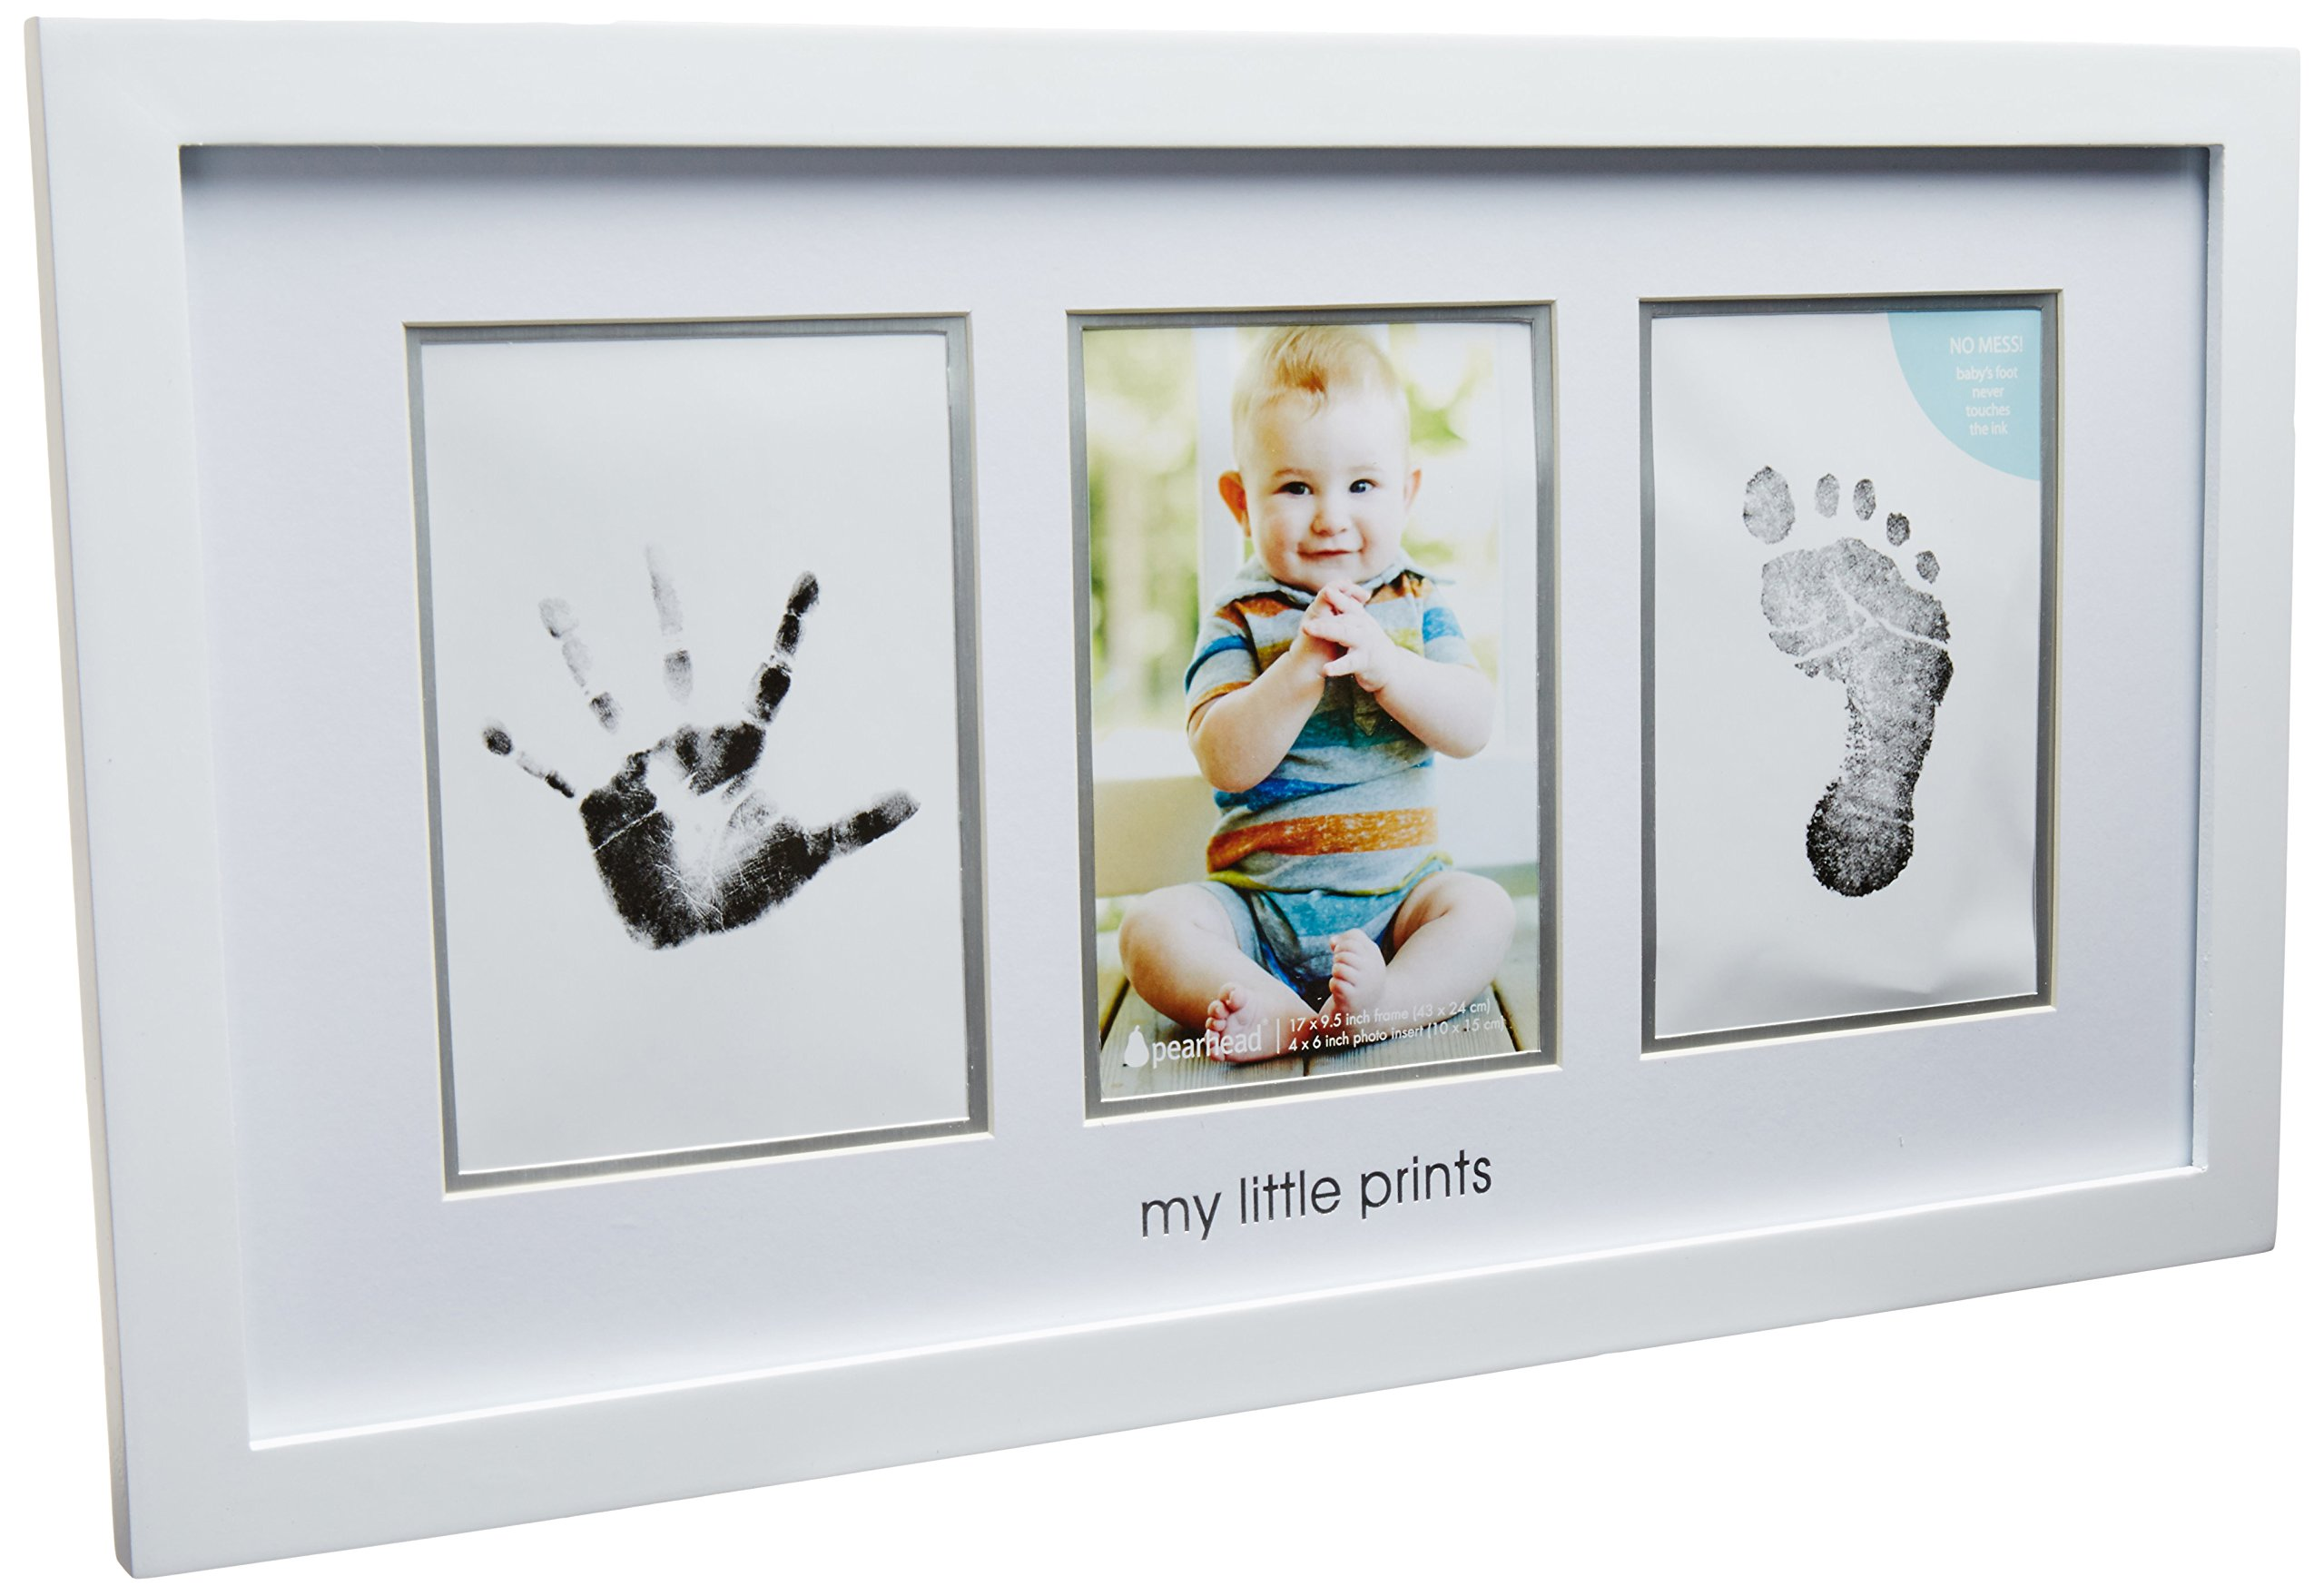 Pearhead Babyprints Newborn Baby Handprint and Footprint Photo Frame Kit with an Included Clean-Touch Ink Pad to Create Baby's Prints - A Perfect Baby Shower Gift